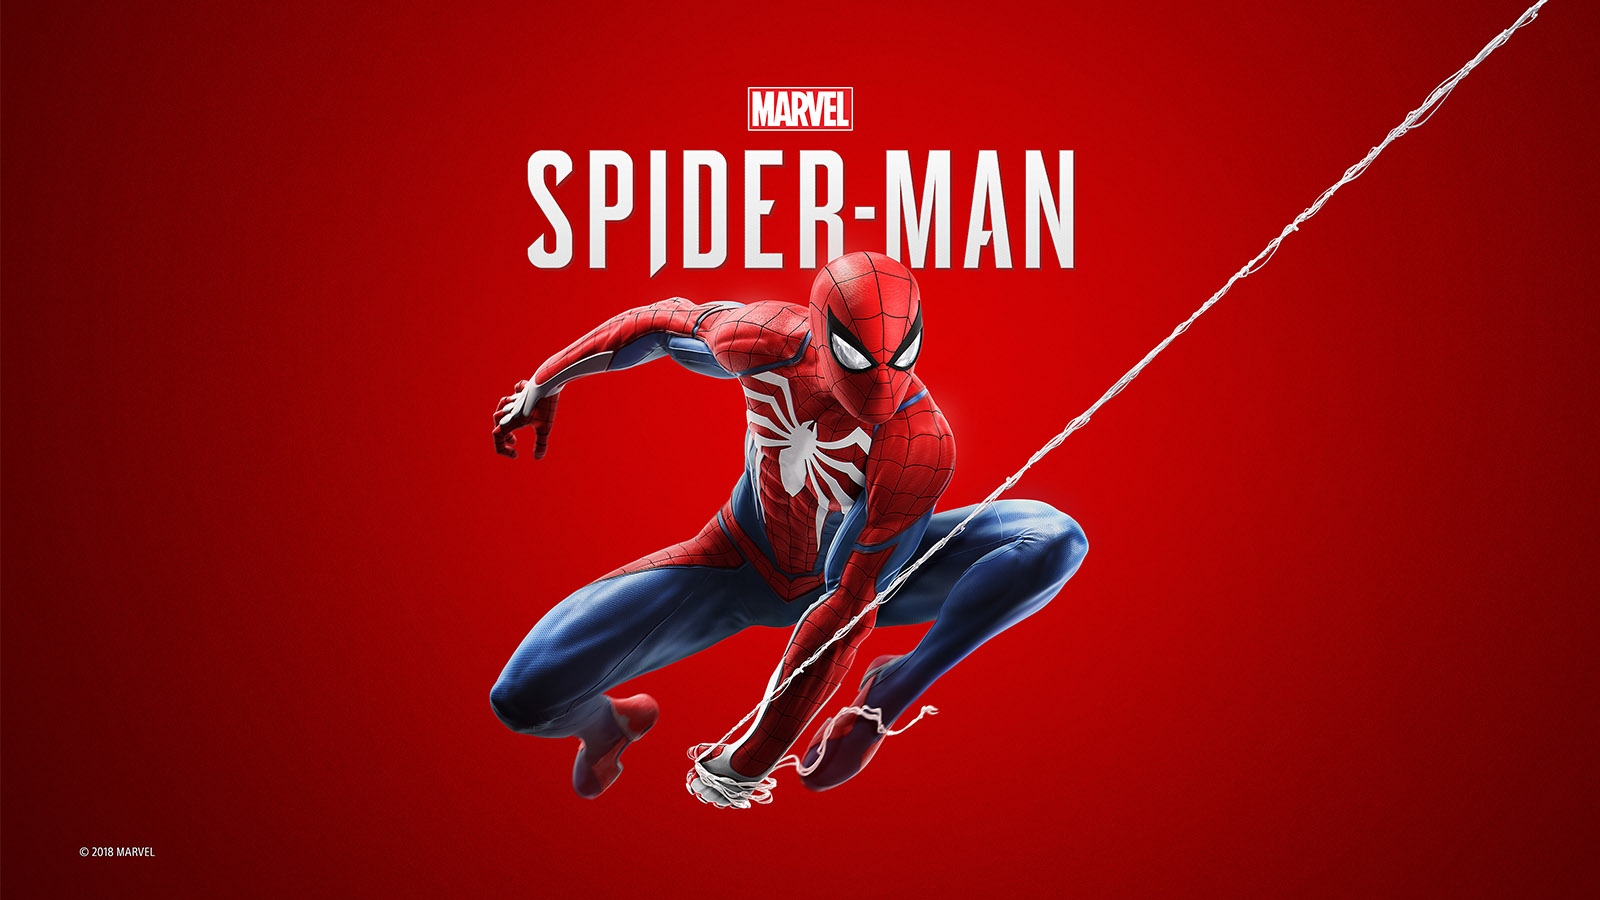 Marvel's Spider-Man was released in 2018 as a PS4 exclusive.